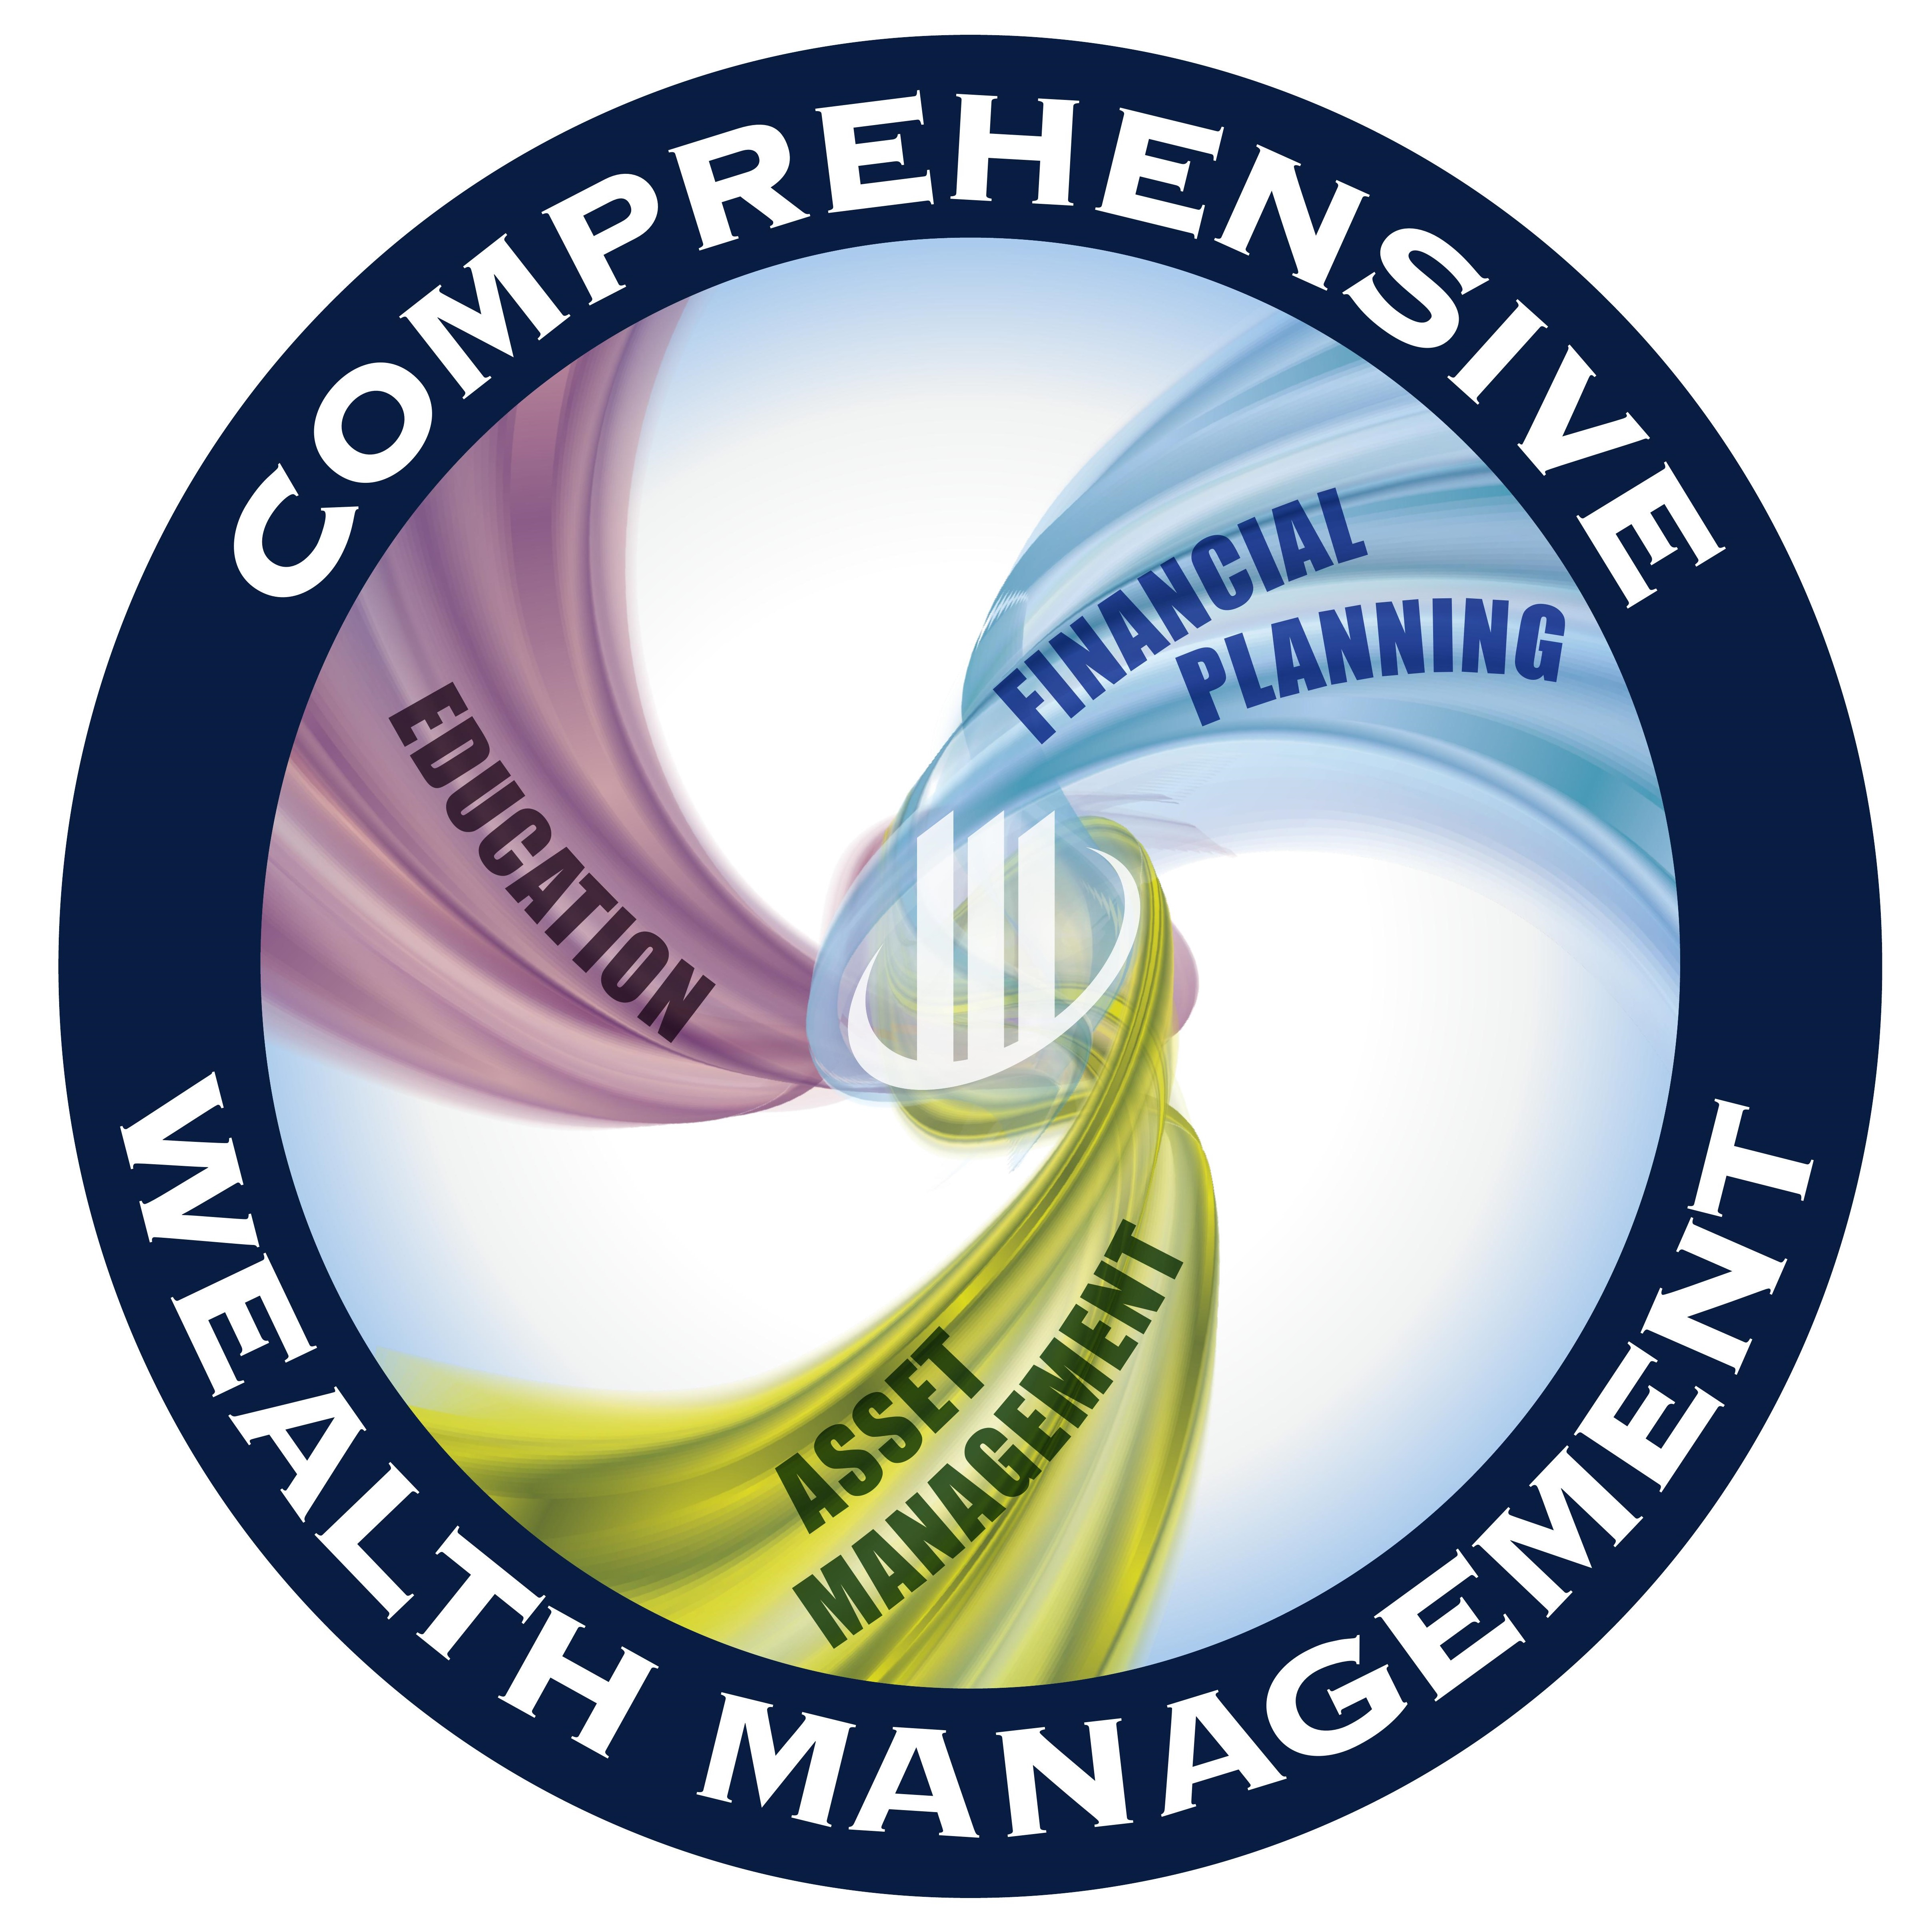 Comprehensive Wealth Management Graphic detailing services in education, financial planning, and asset management